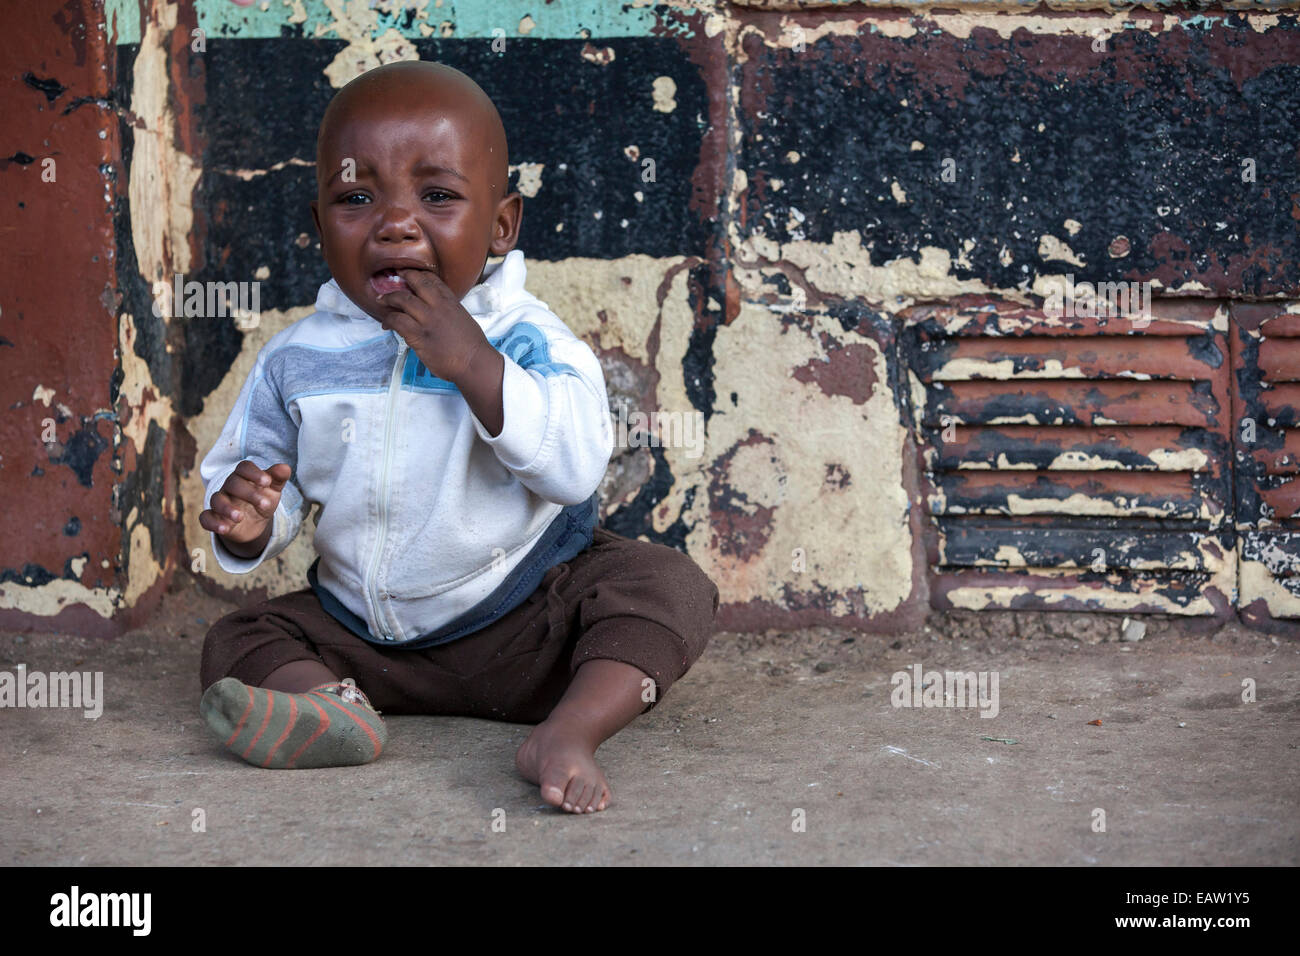 A baby cries outside one of Durban Deep Goldmine's hostels on the outskirts of Johannesburg South Africa. - Stock Image